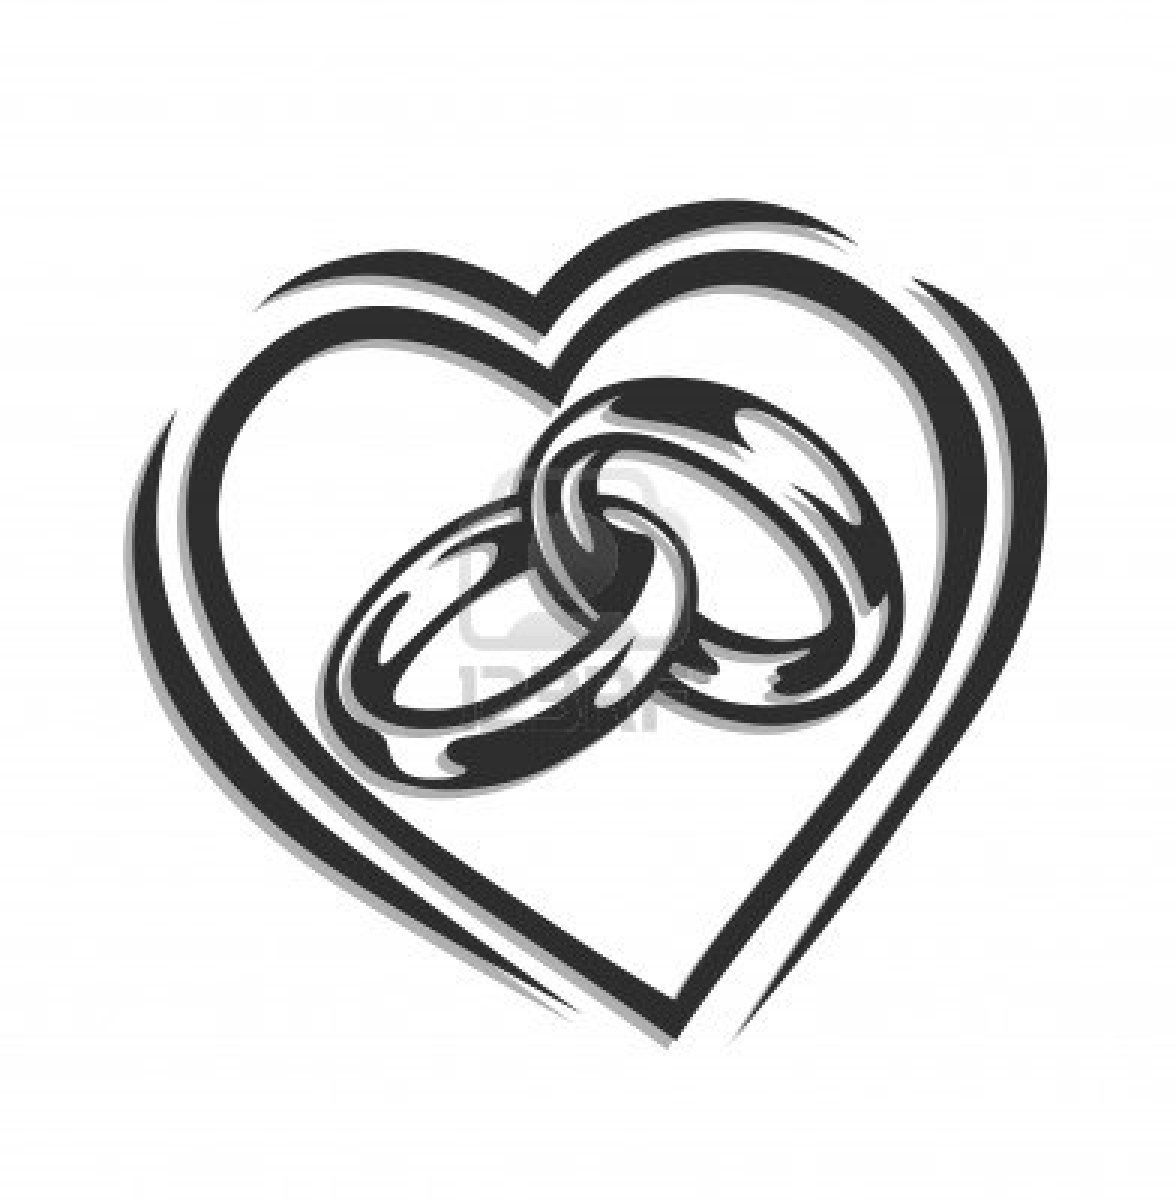 finger rings clipart clipground.